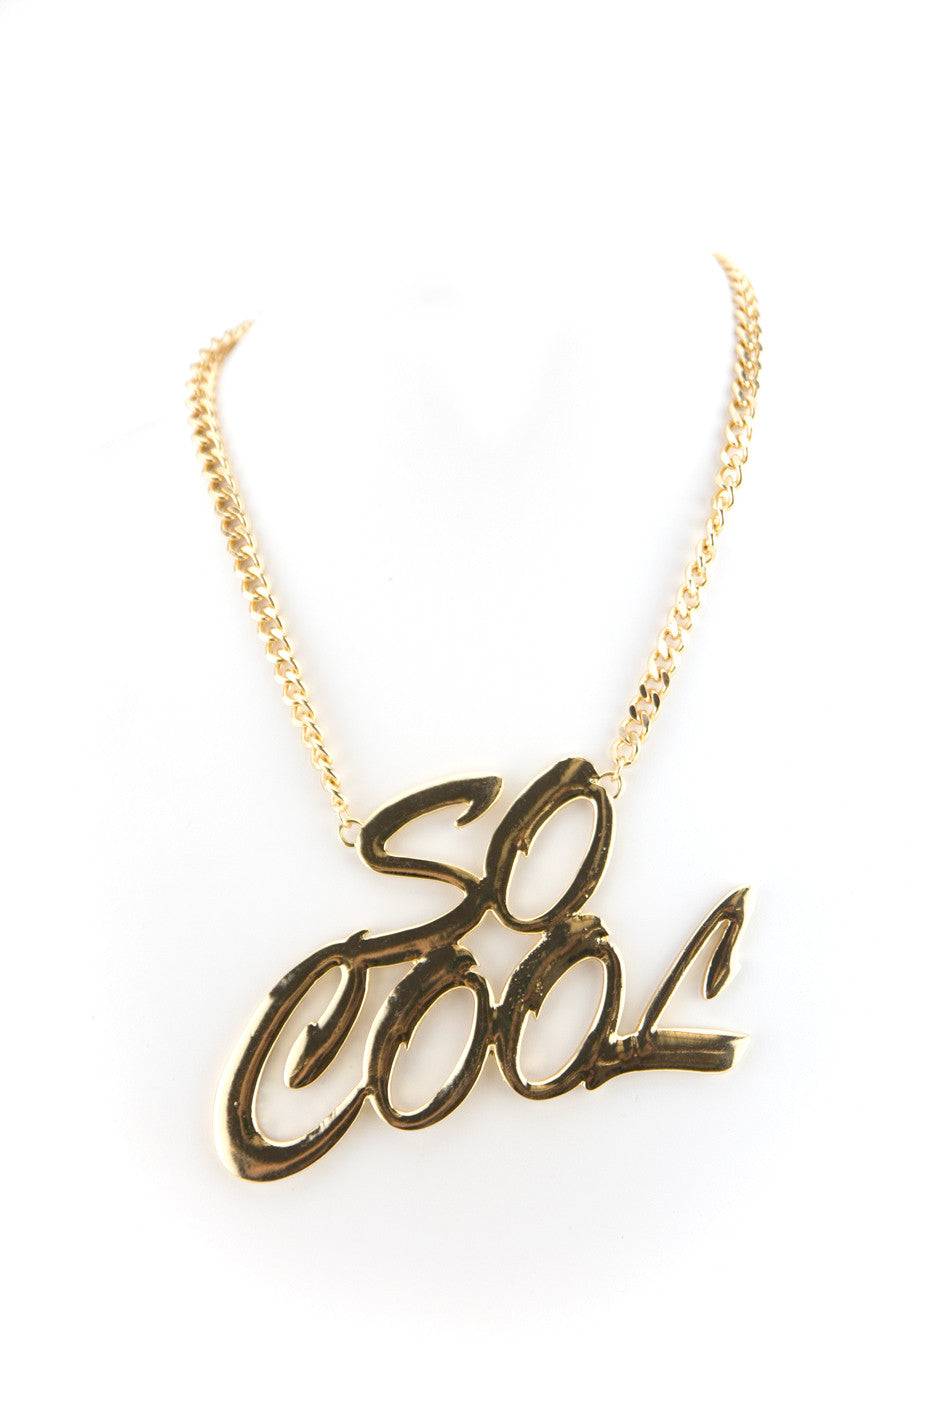 SO COOL LARGE SOLID GOLD NECKLACE - Haute & Rebellious